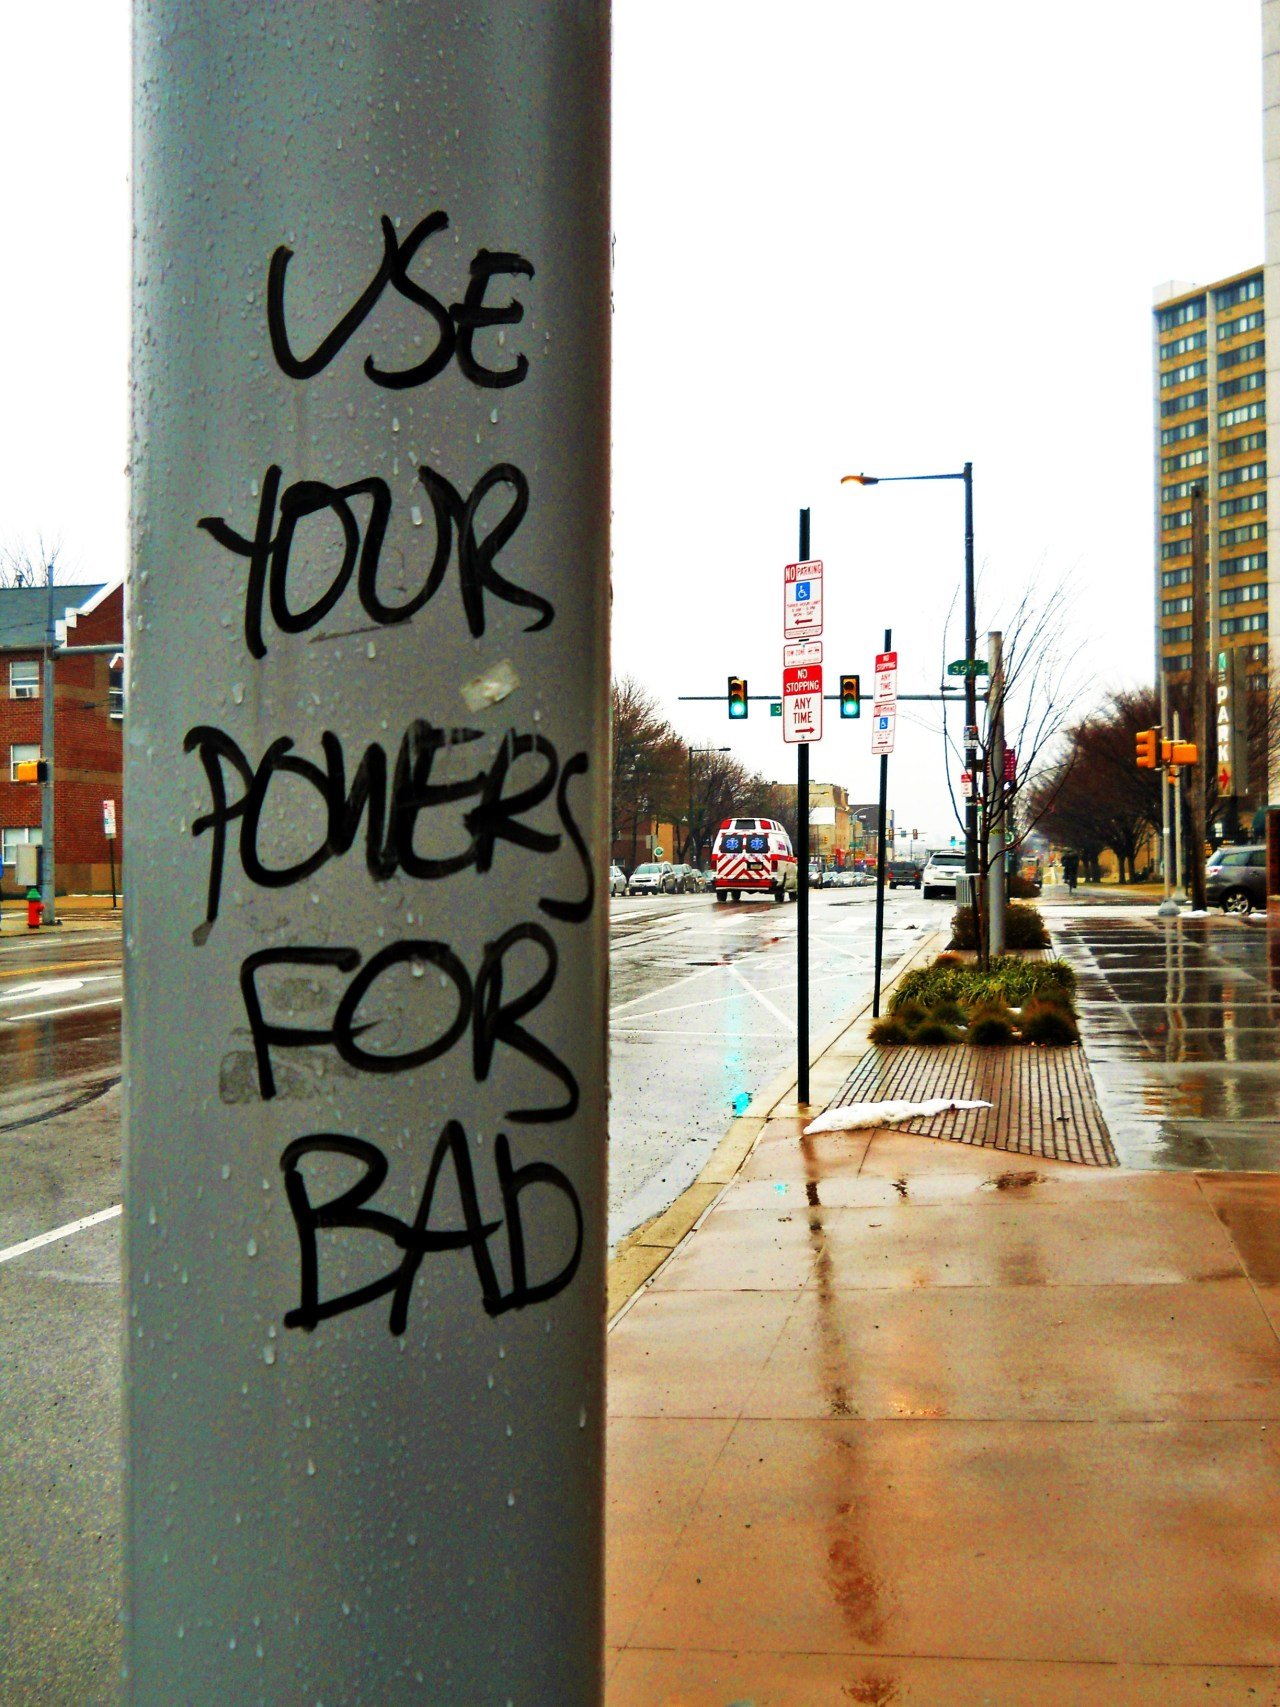 A thought from a graffiti artist.